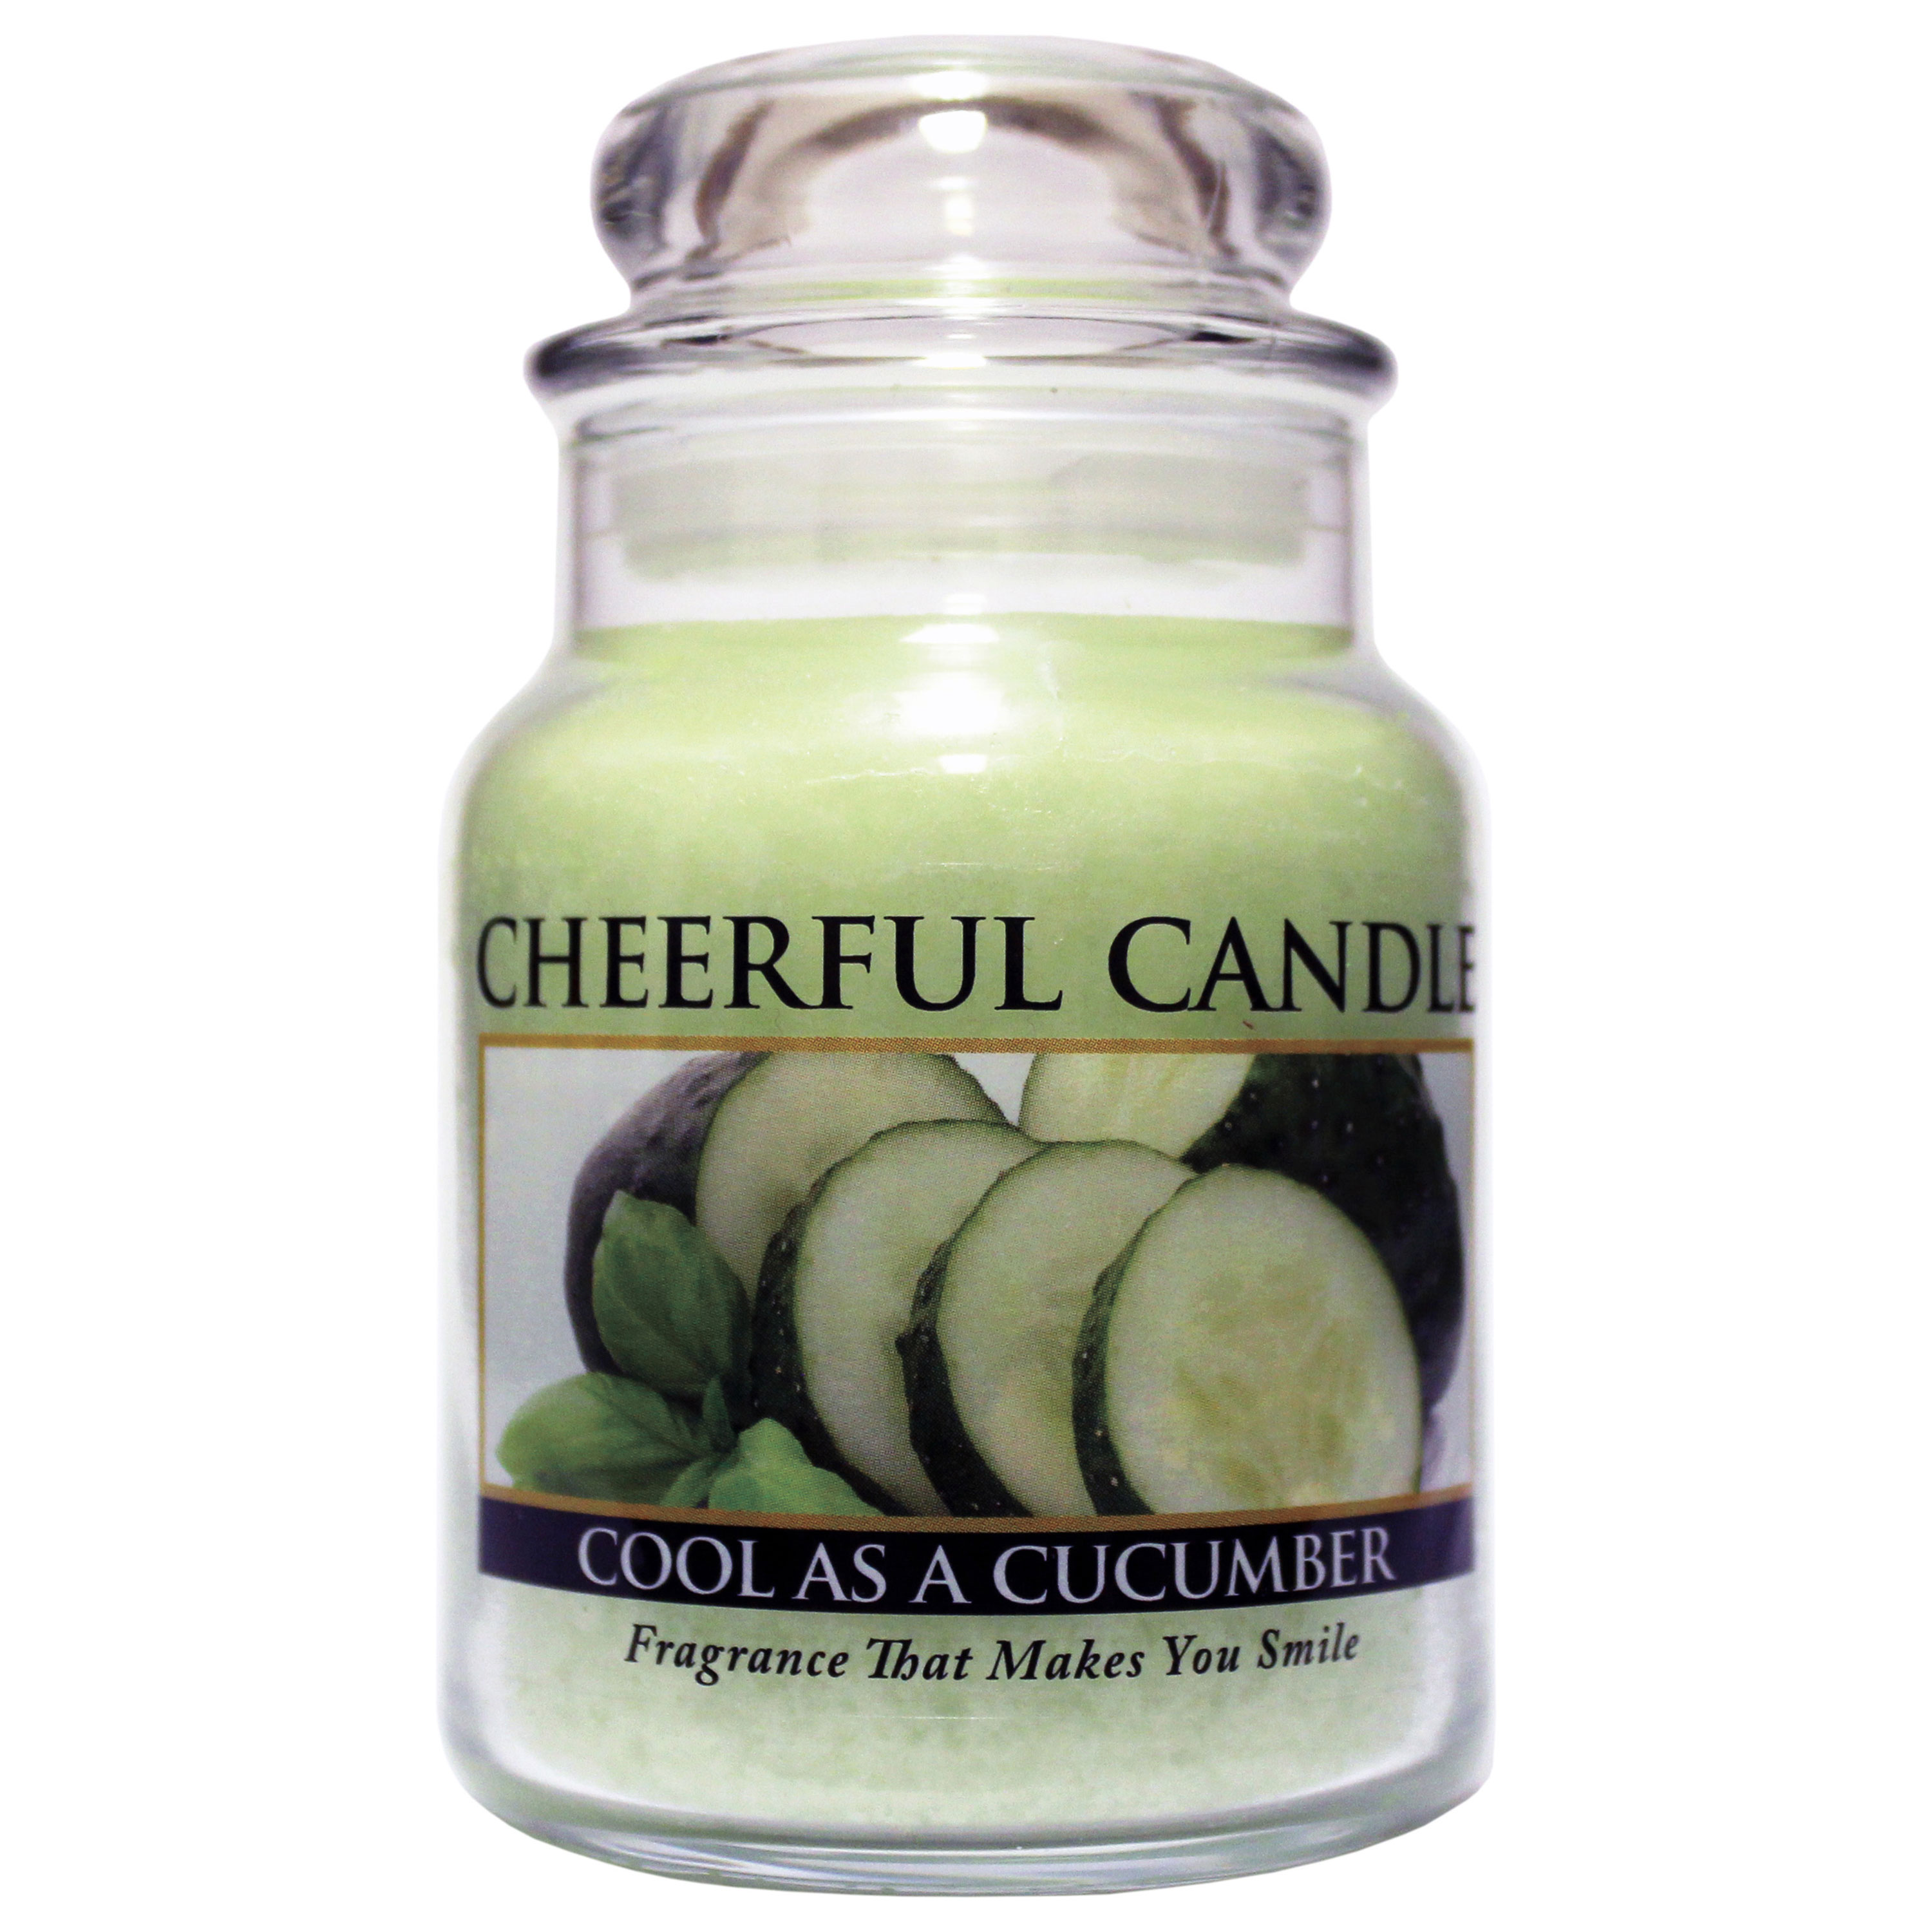 Cool as a Cucumber 6oz Cheerful Candle